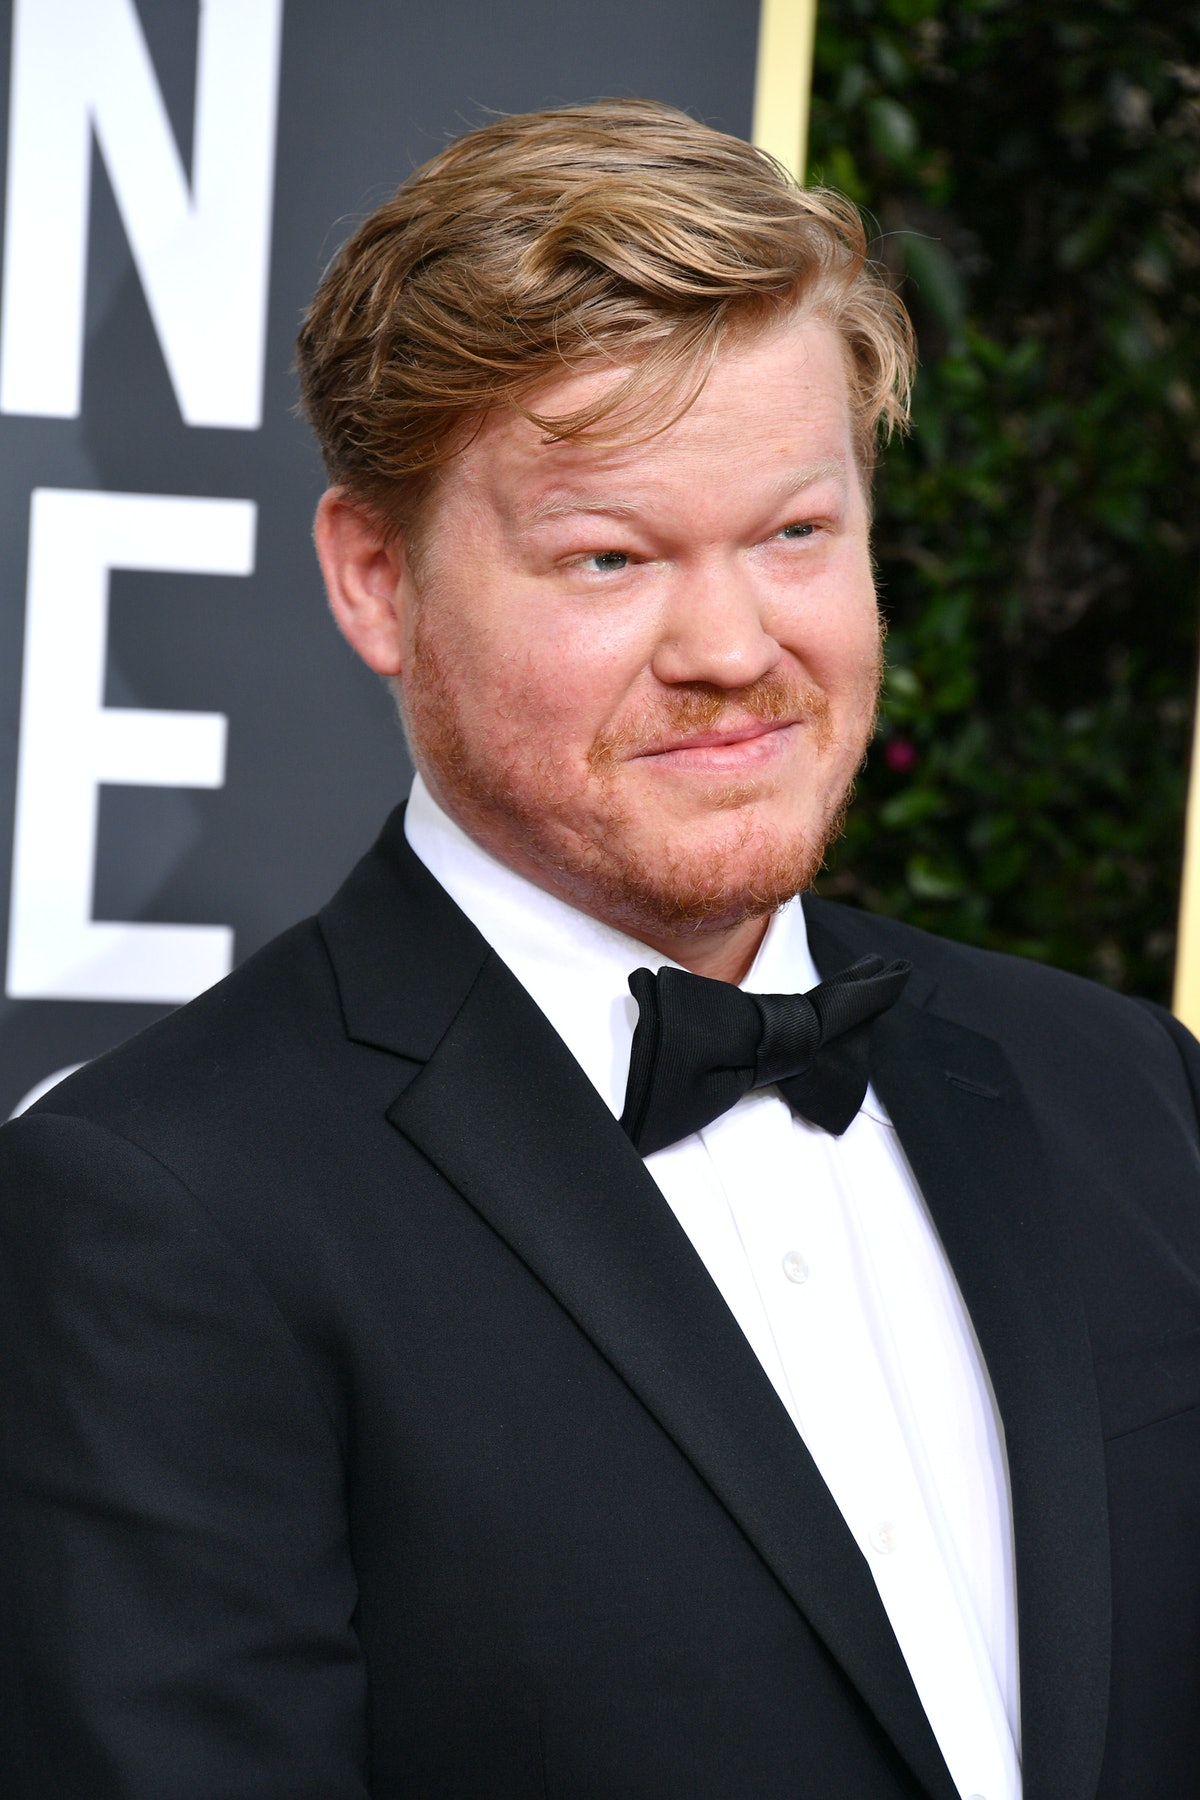 BEVERLY HILLS, CALIFORNIA - JANUARY 05: Jesse Plemons attends the 77th Annual Golden Globe Awards at...